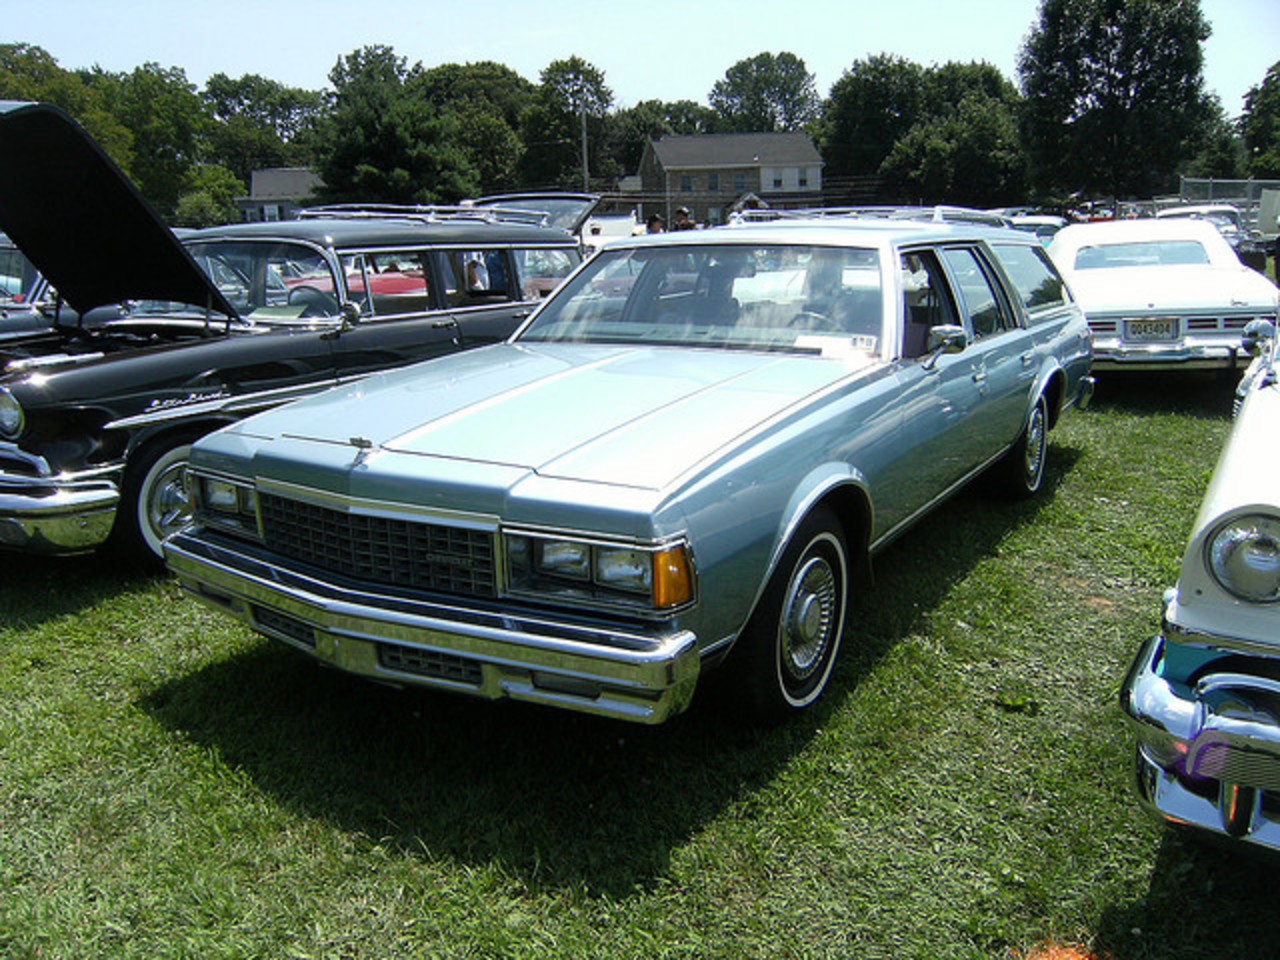 78 Chevy Caprice sw | Flickr - Photo Sharing!